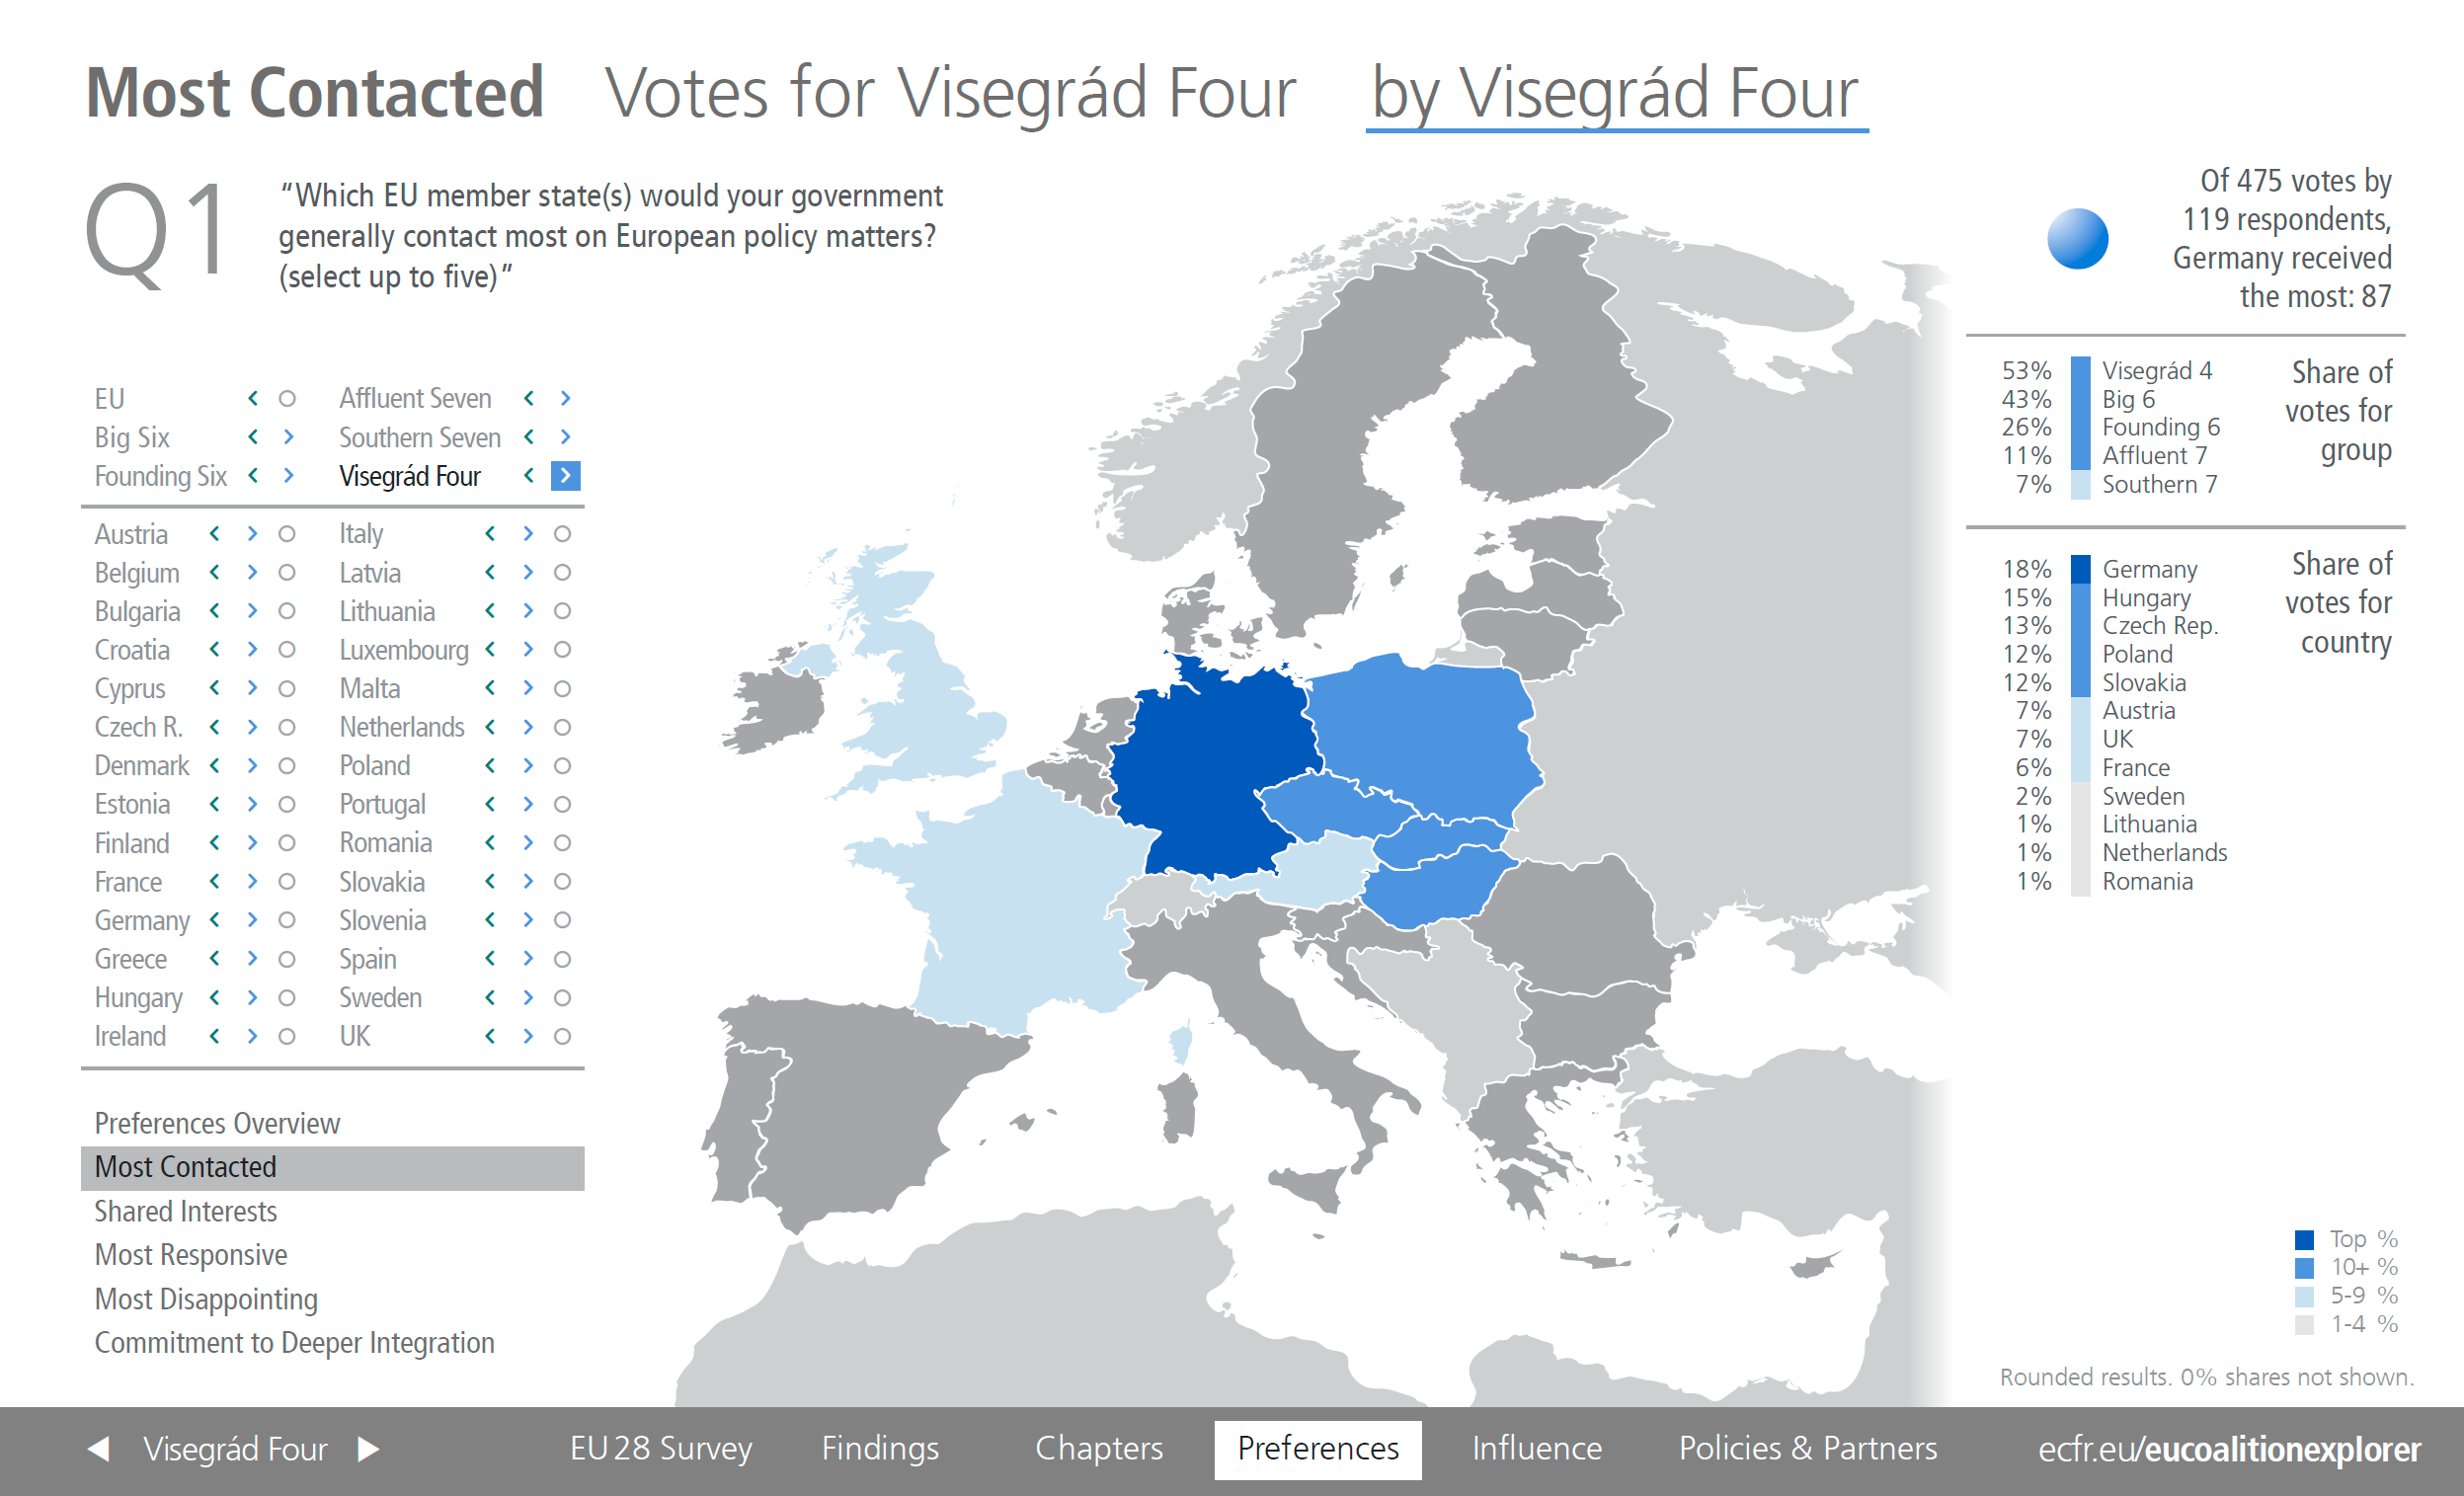 Most contacted EU countries by Visegrad 4